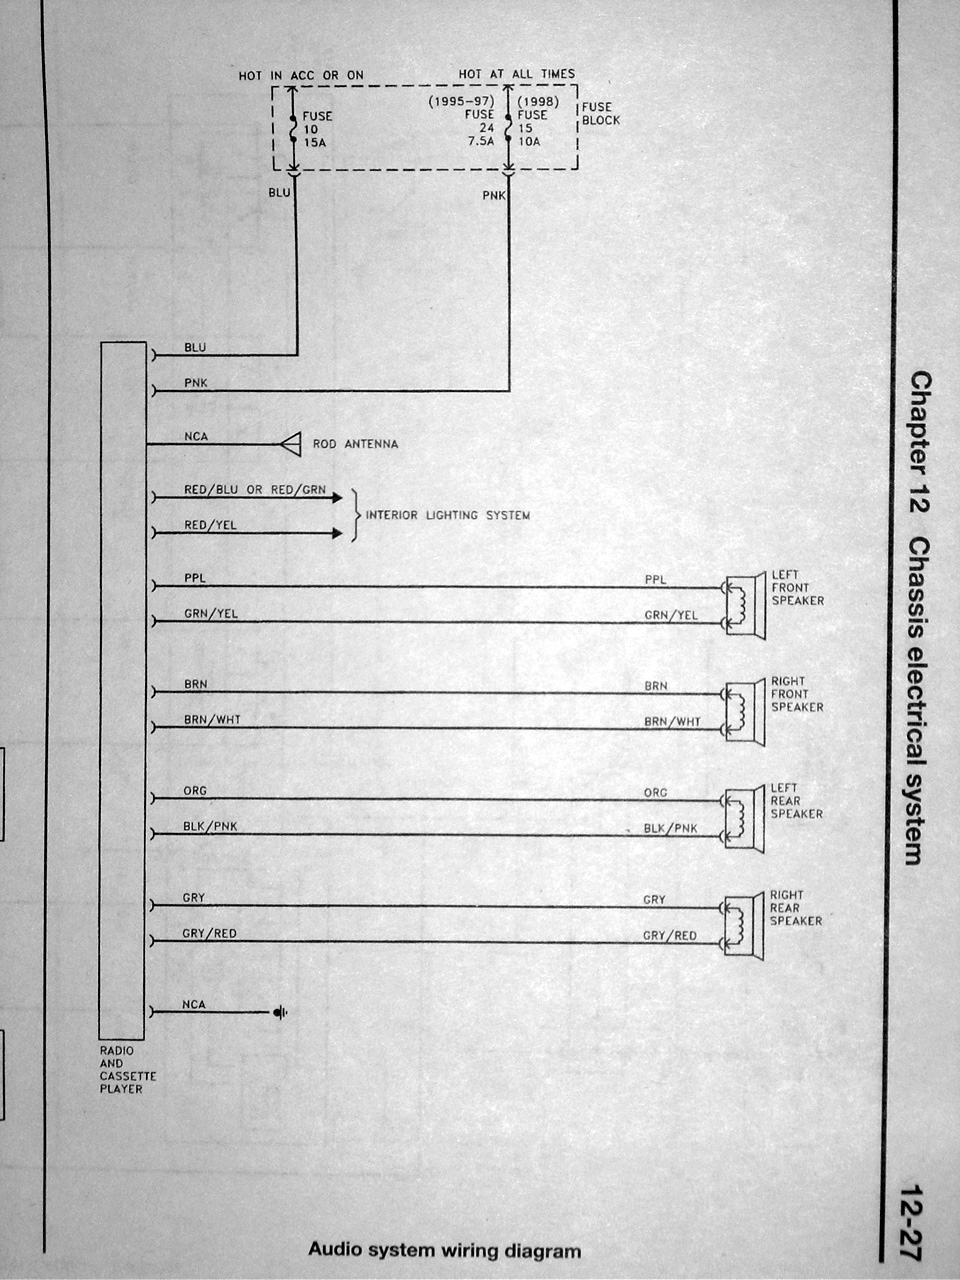 DSC01849 wiring diagram thread *useful info* nissan forum 2010 nissan altima stereo wiring diagram at aneh.co